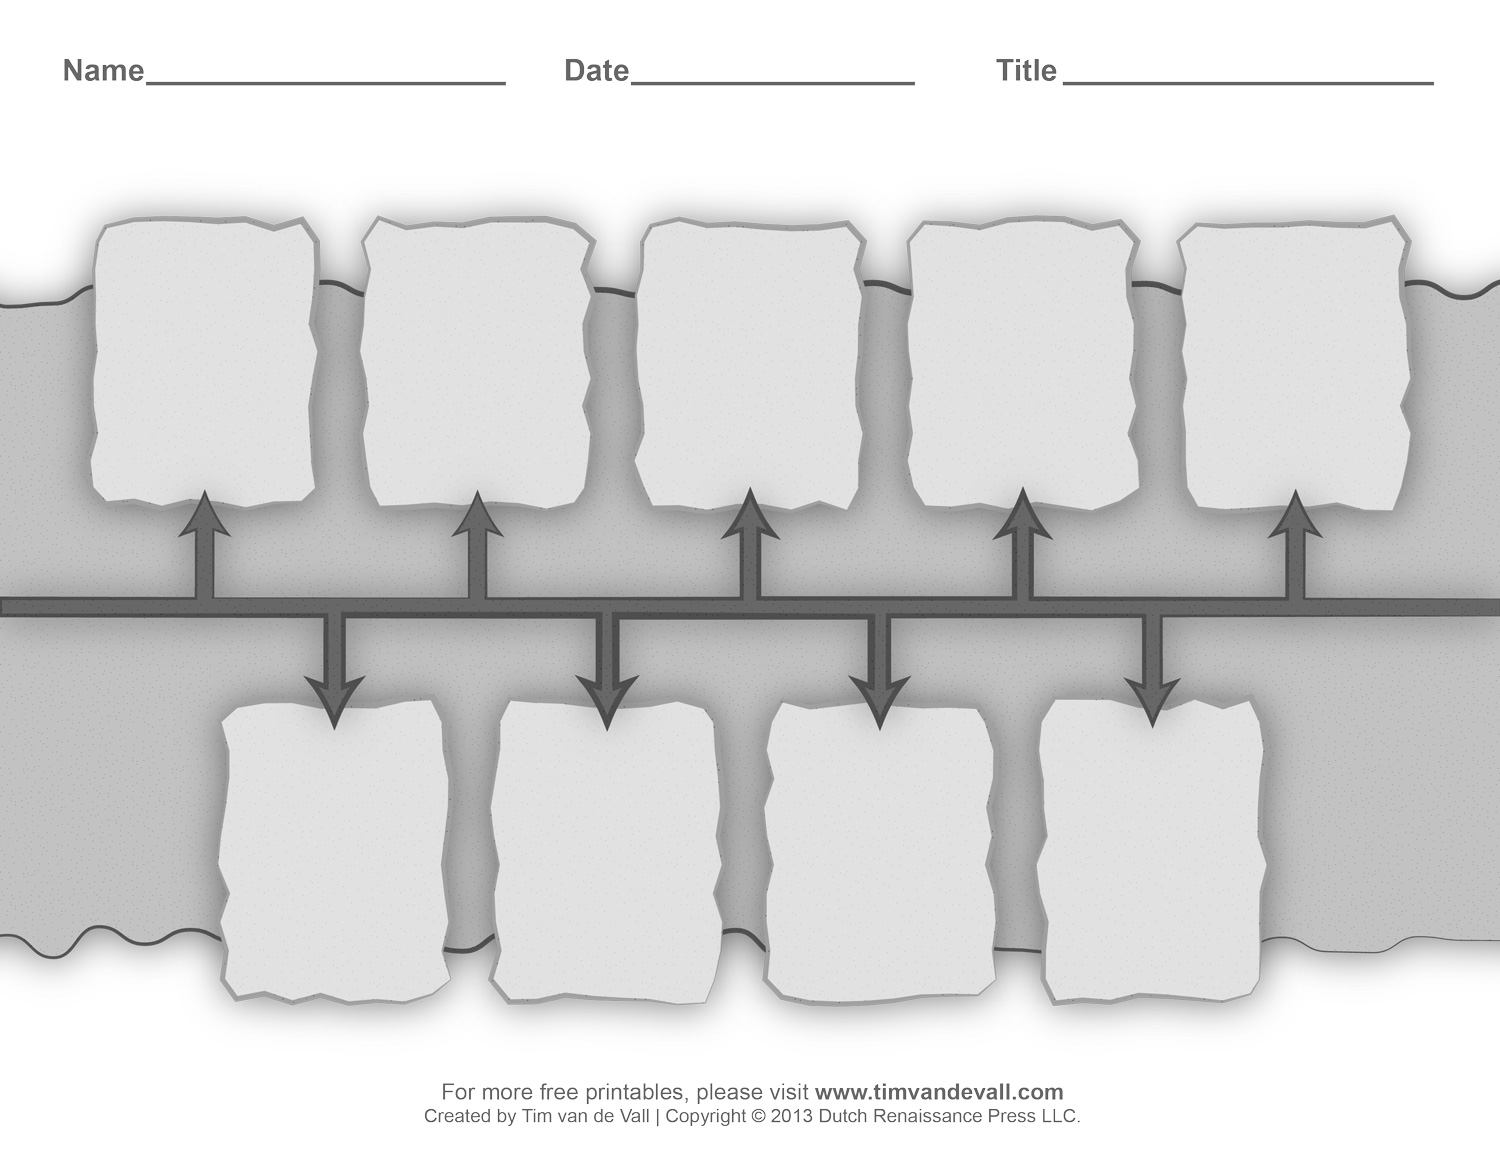 Printable History Timeline Worksheets For Classrooms